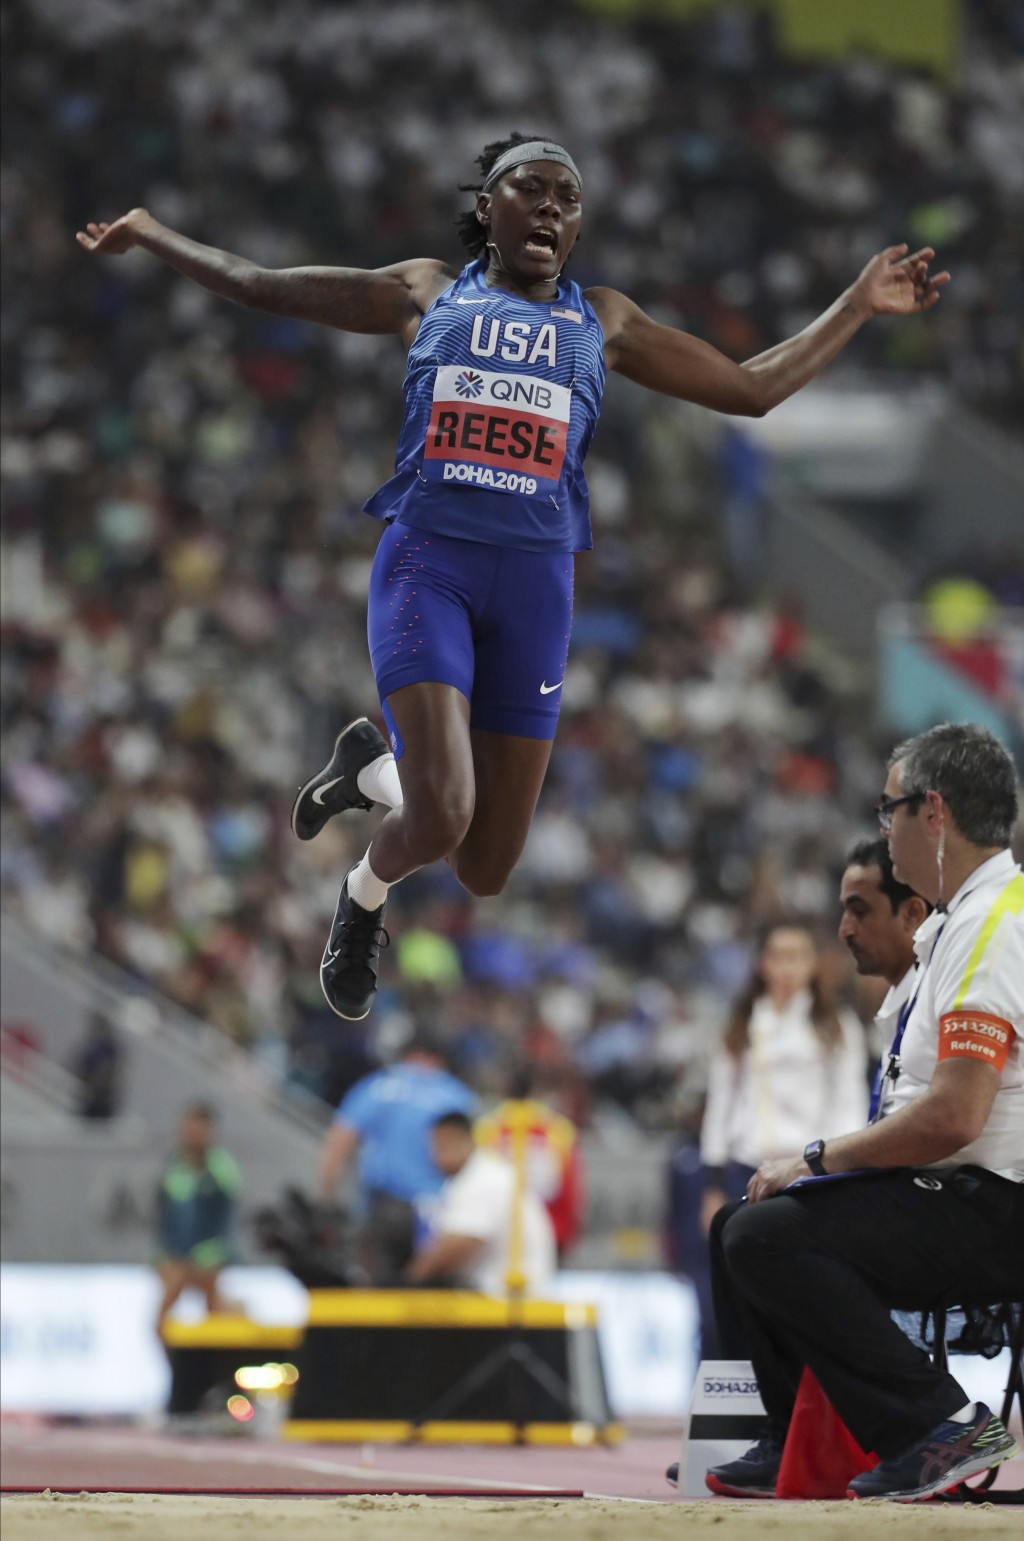 Brittney Reese, of the United States, competes in the women's long jump qualification at the World Athletics Championships in Doha, Qatar, Saturday, O